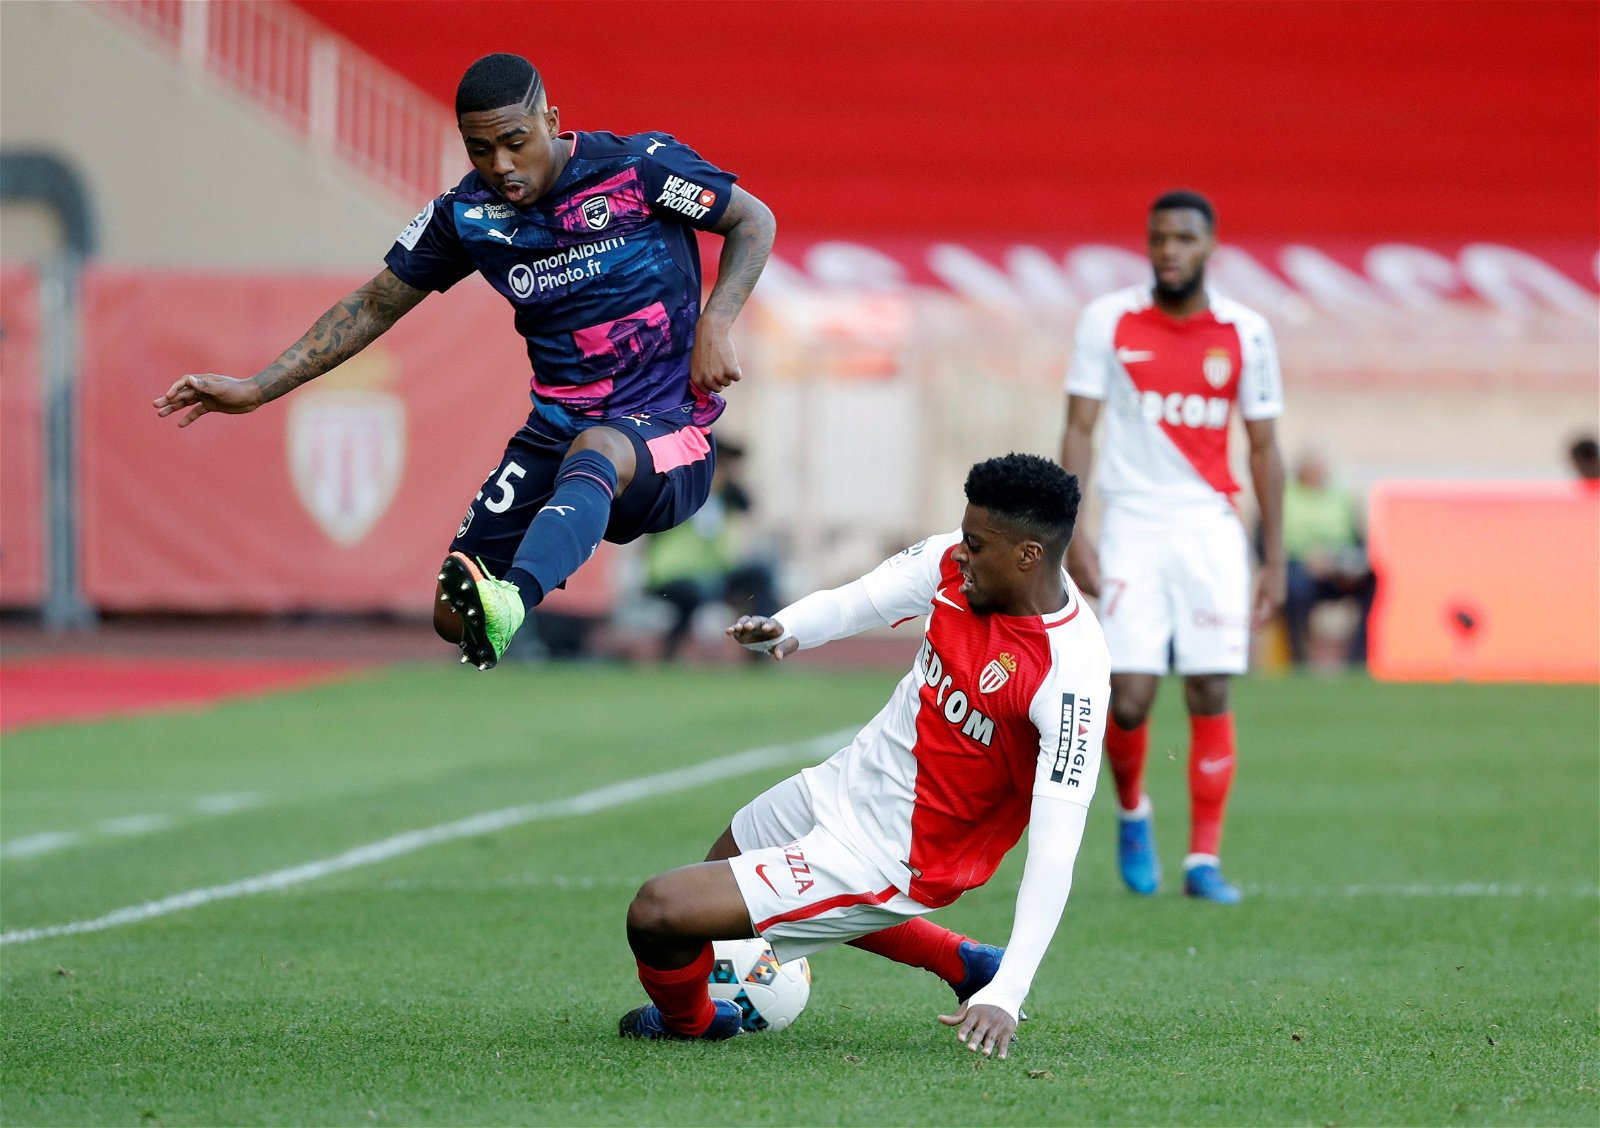 Malcom leaps in the air to avoid a tackle in Bordeaux's clash against Monaco